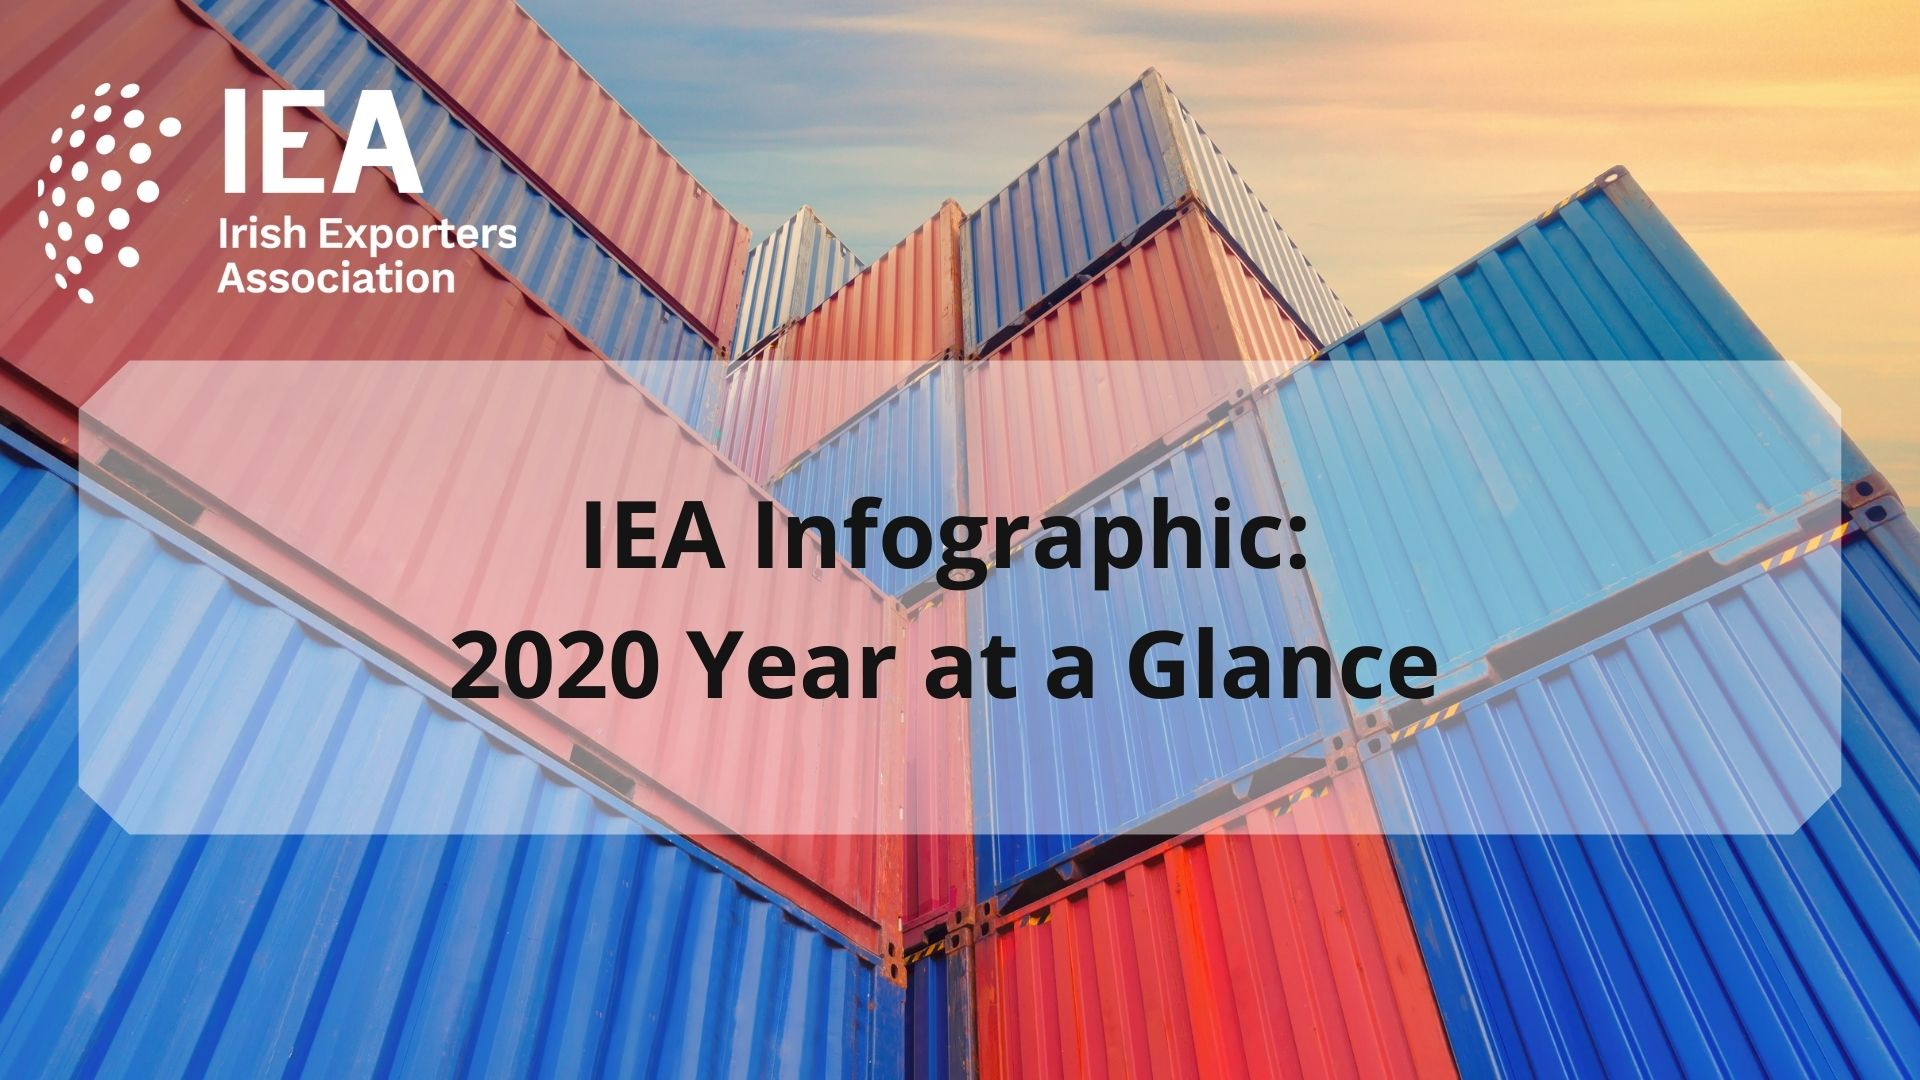 Irish Exporters Association publishes 2020 Year at a Glance graphic